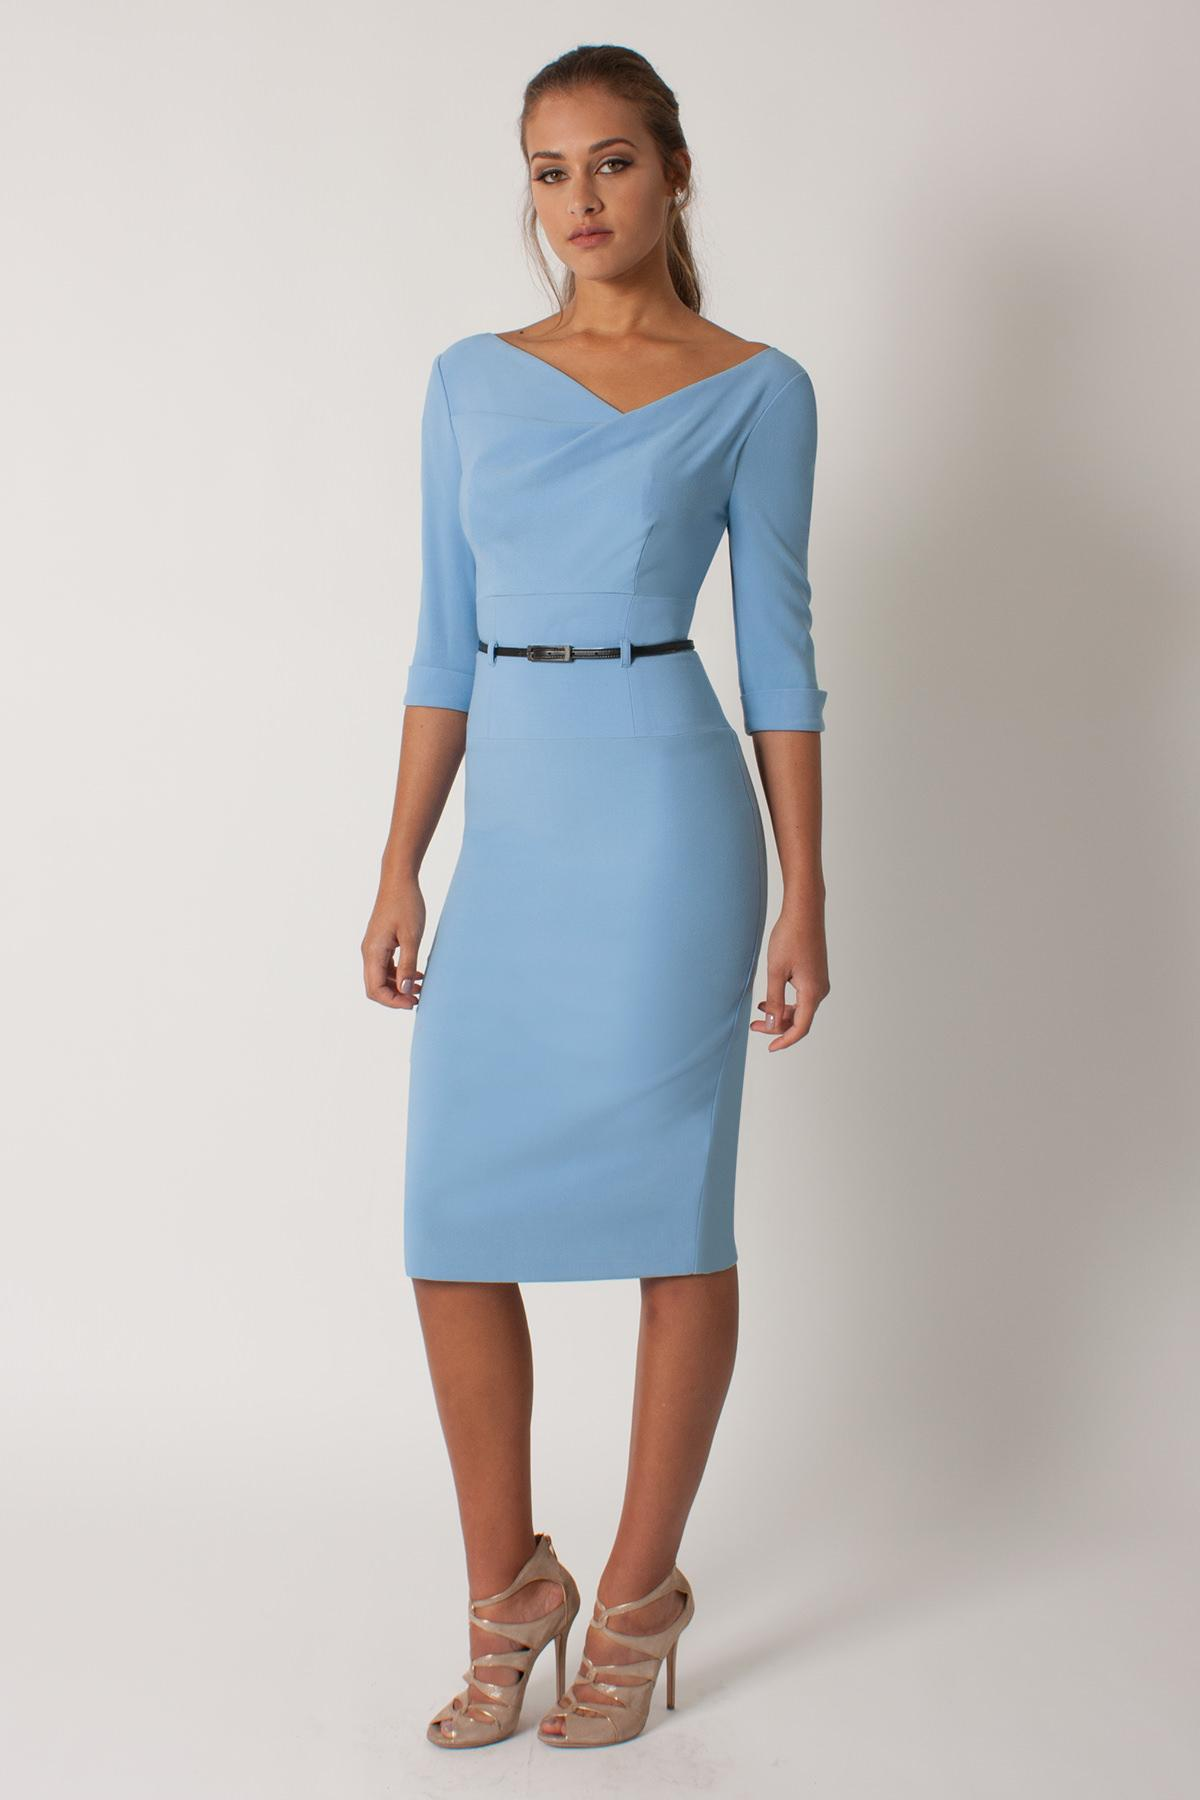 b49032426ec Black Halo 3 4 Slv Jackie O Dress in Blue - Lyst